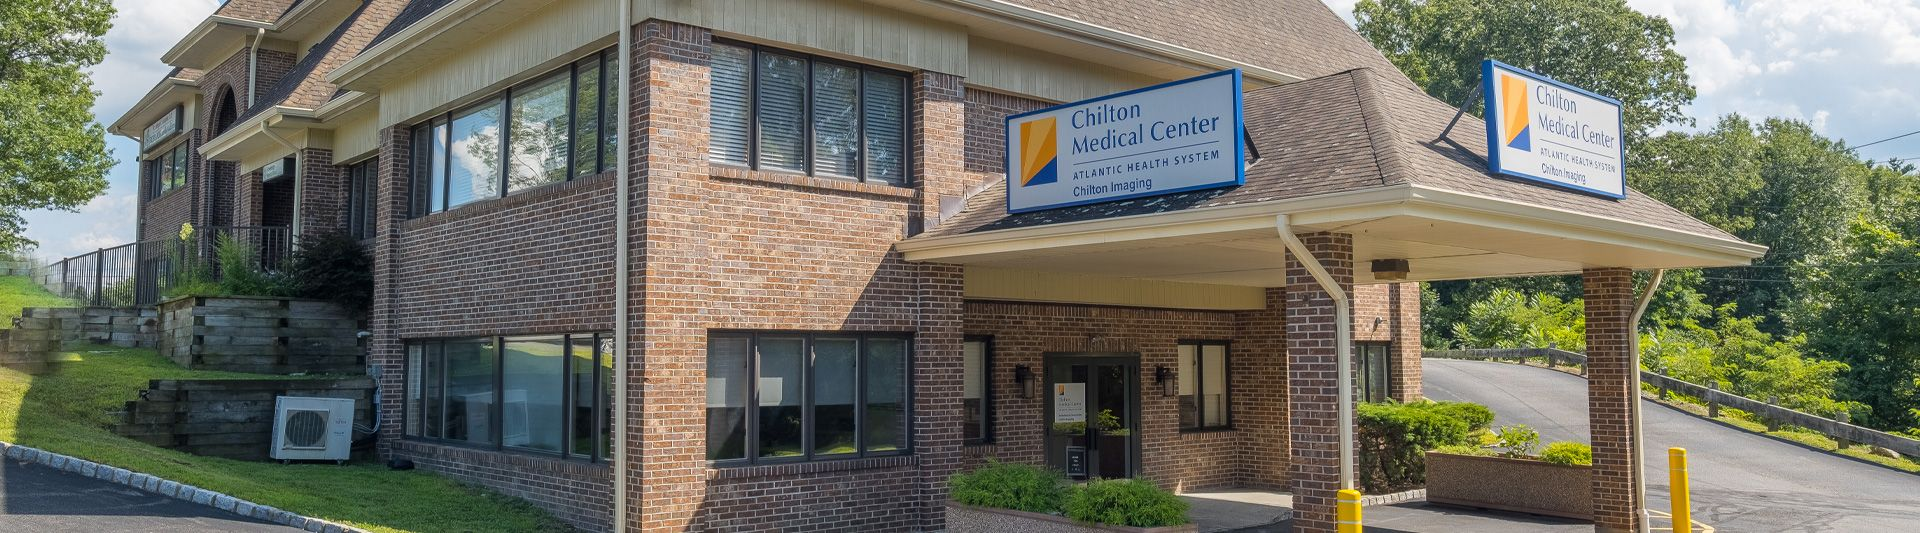 Chilton Ambulatory Care Center at Hewitt Plaza